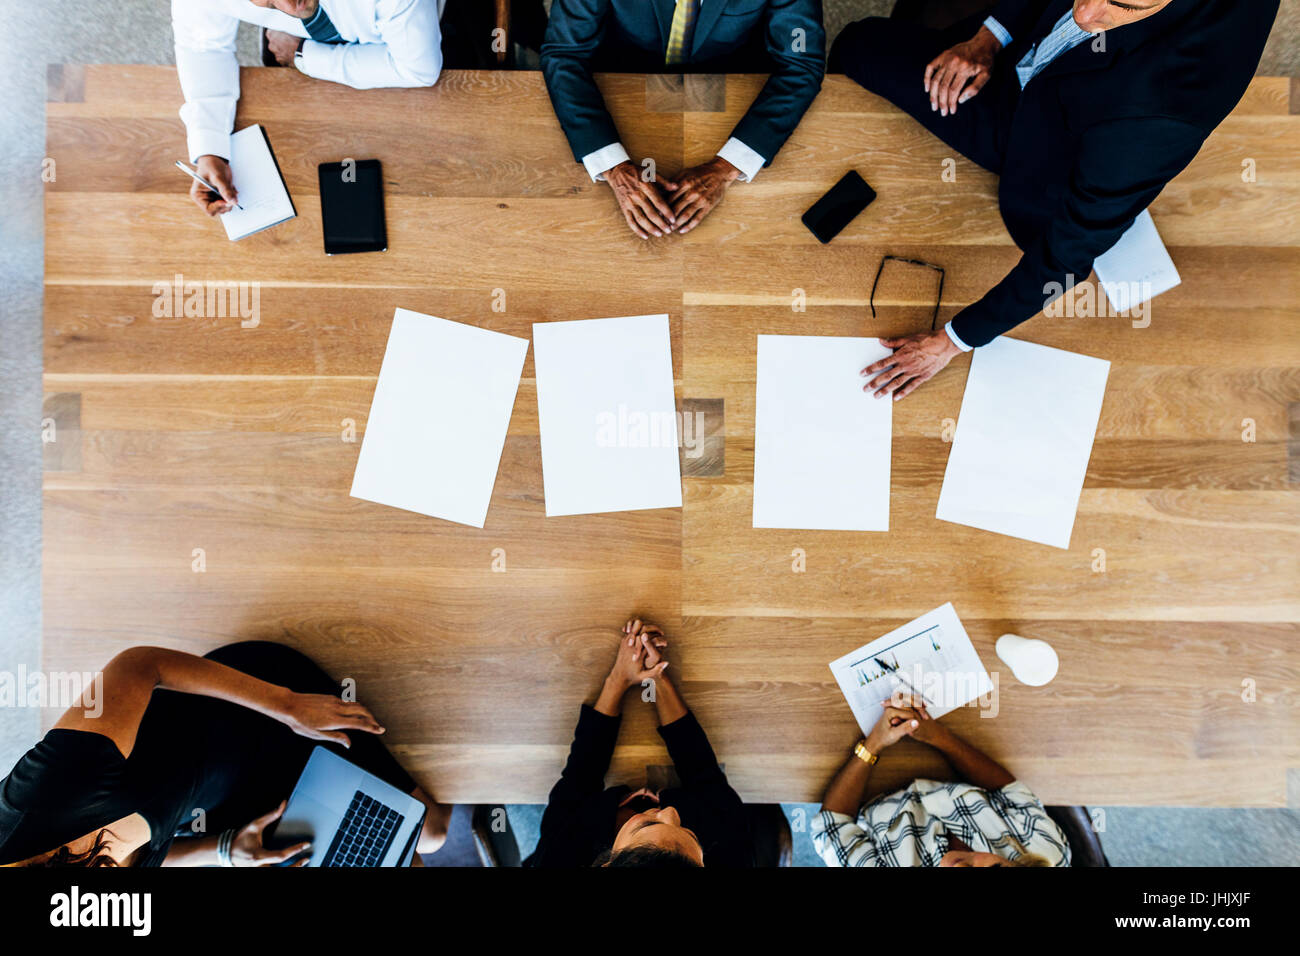 Top view of business people sitting around a table with blank sheets. Multi ethnic business professionals in meeting. - Stock Image